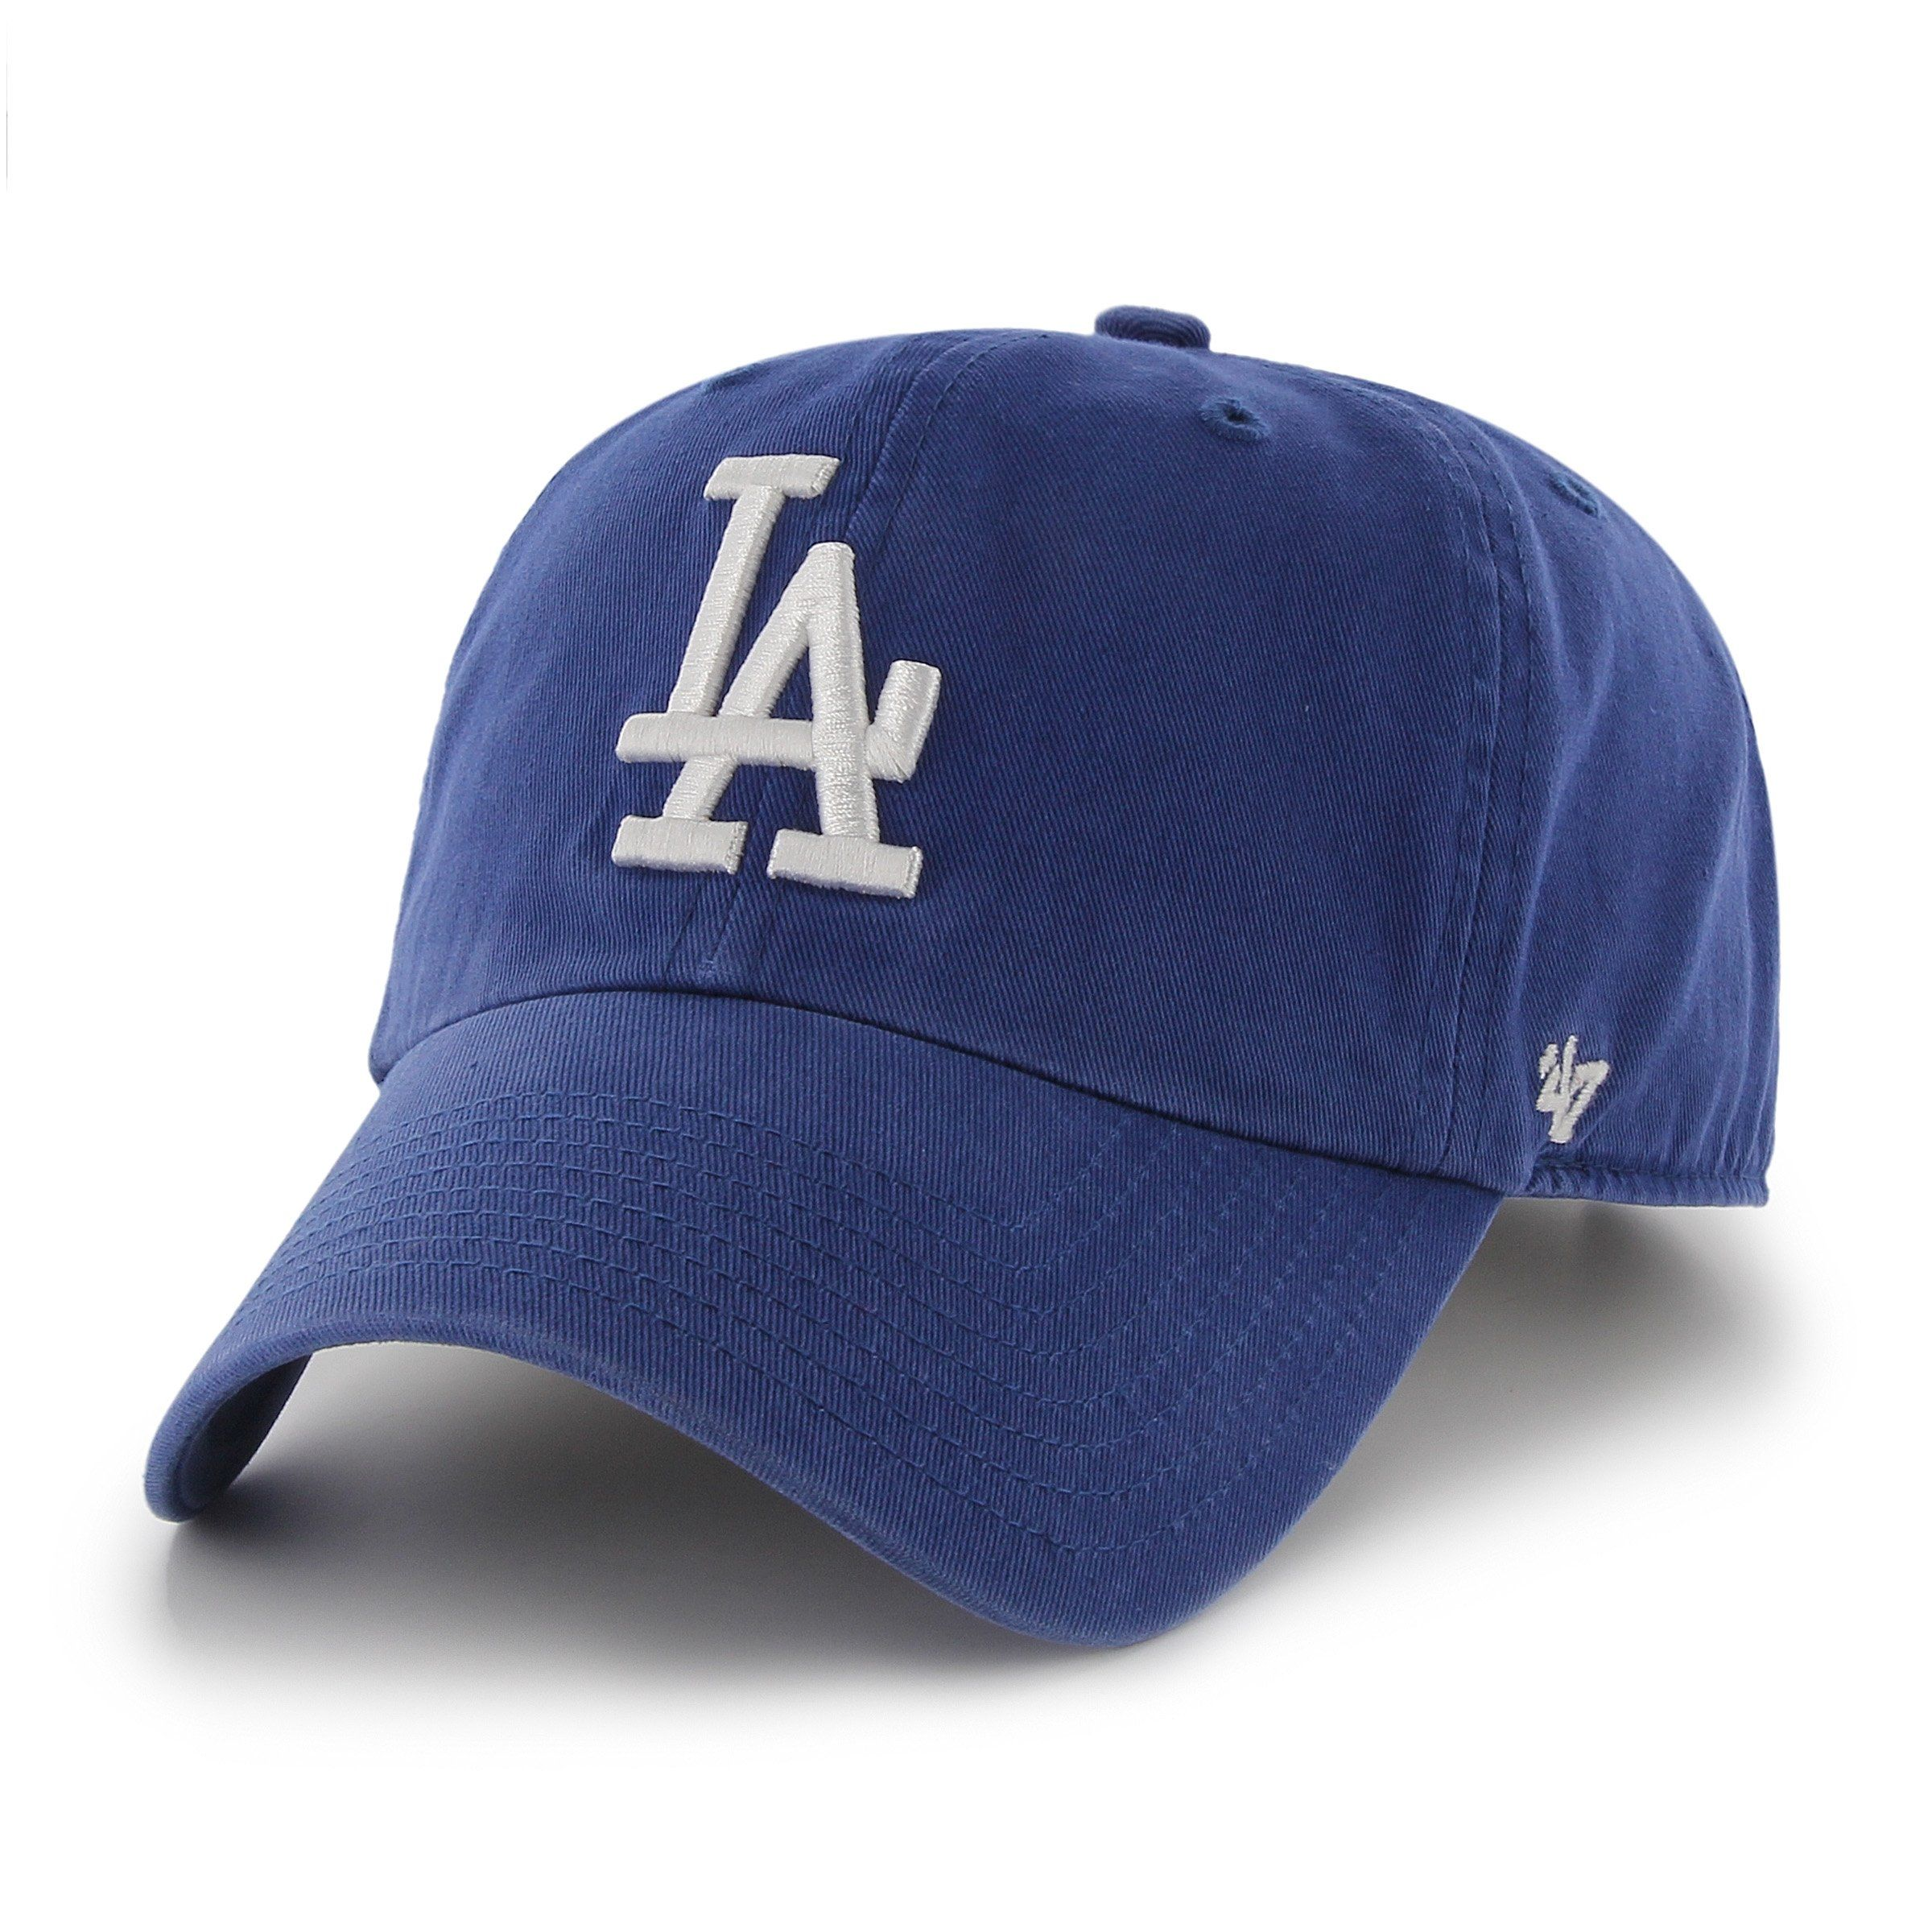 new concept bf438 3f3c3 ... official mlb los angeles dodgers 47 clean up adjustable hat royal one  size 3ba64 c0cef